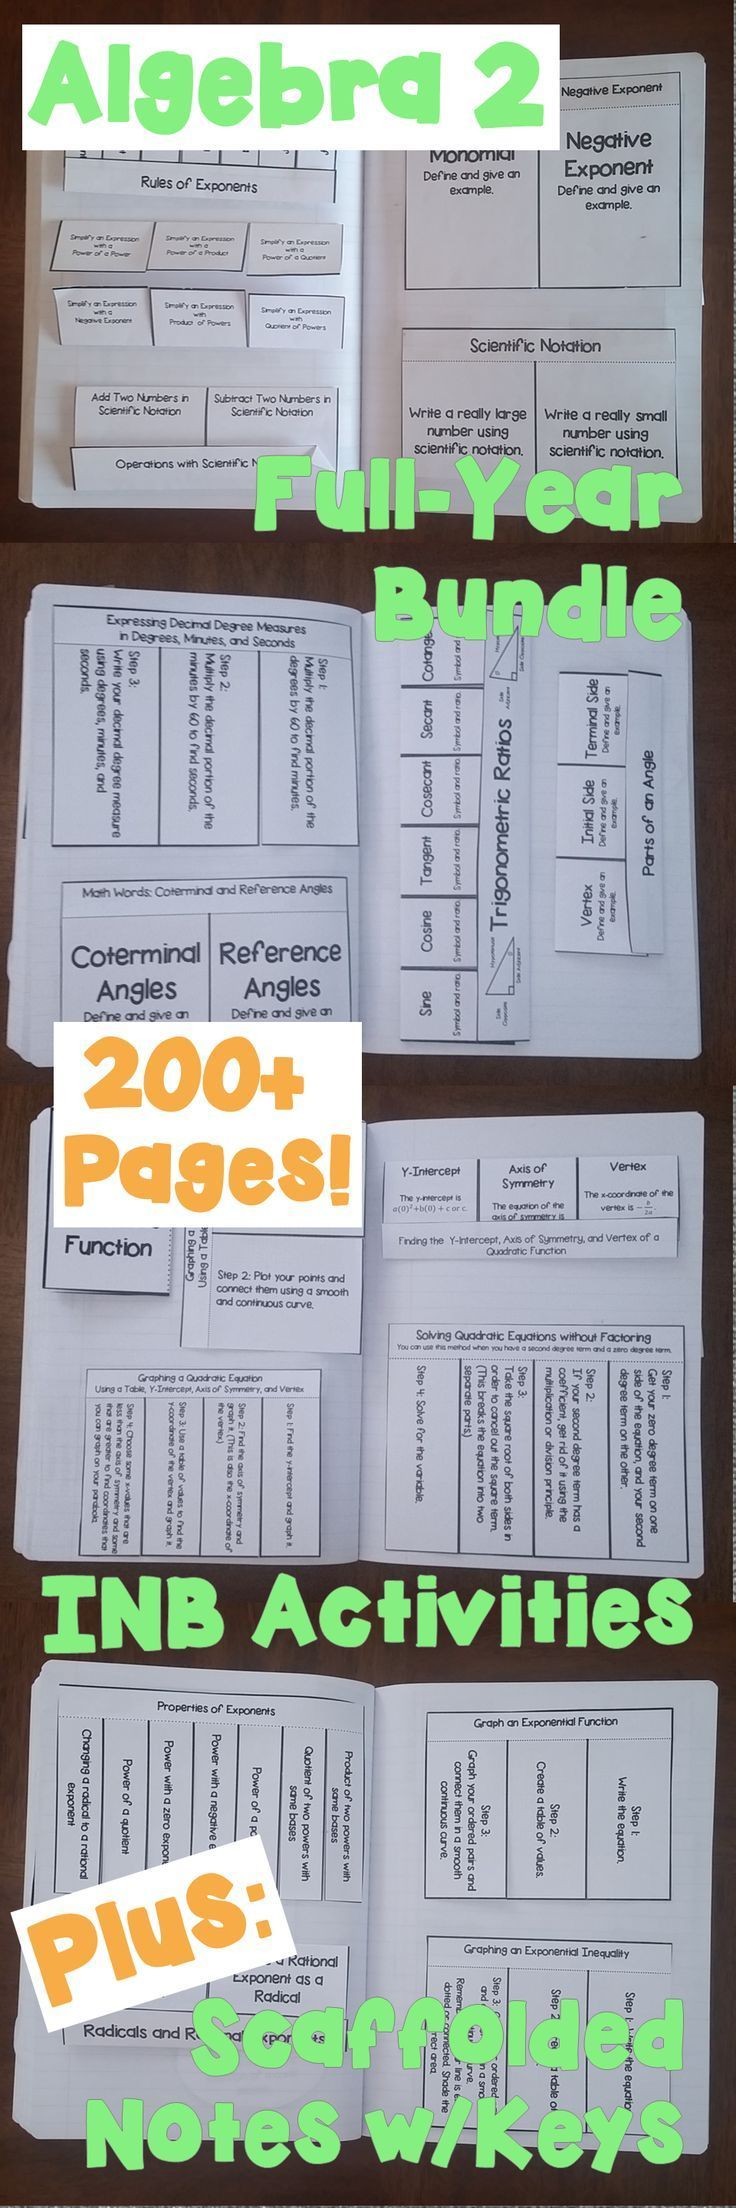 Packed full of interactive notebook activities for Algebra 2/Integrated Math students, this HUGE bundle also includes scaffolded notes w/answer keys.  Includes the following sections: Solving Equations & Inequalities, Linear Relations & Functions,